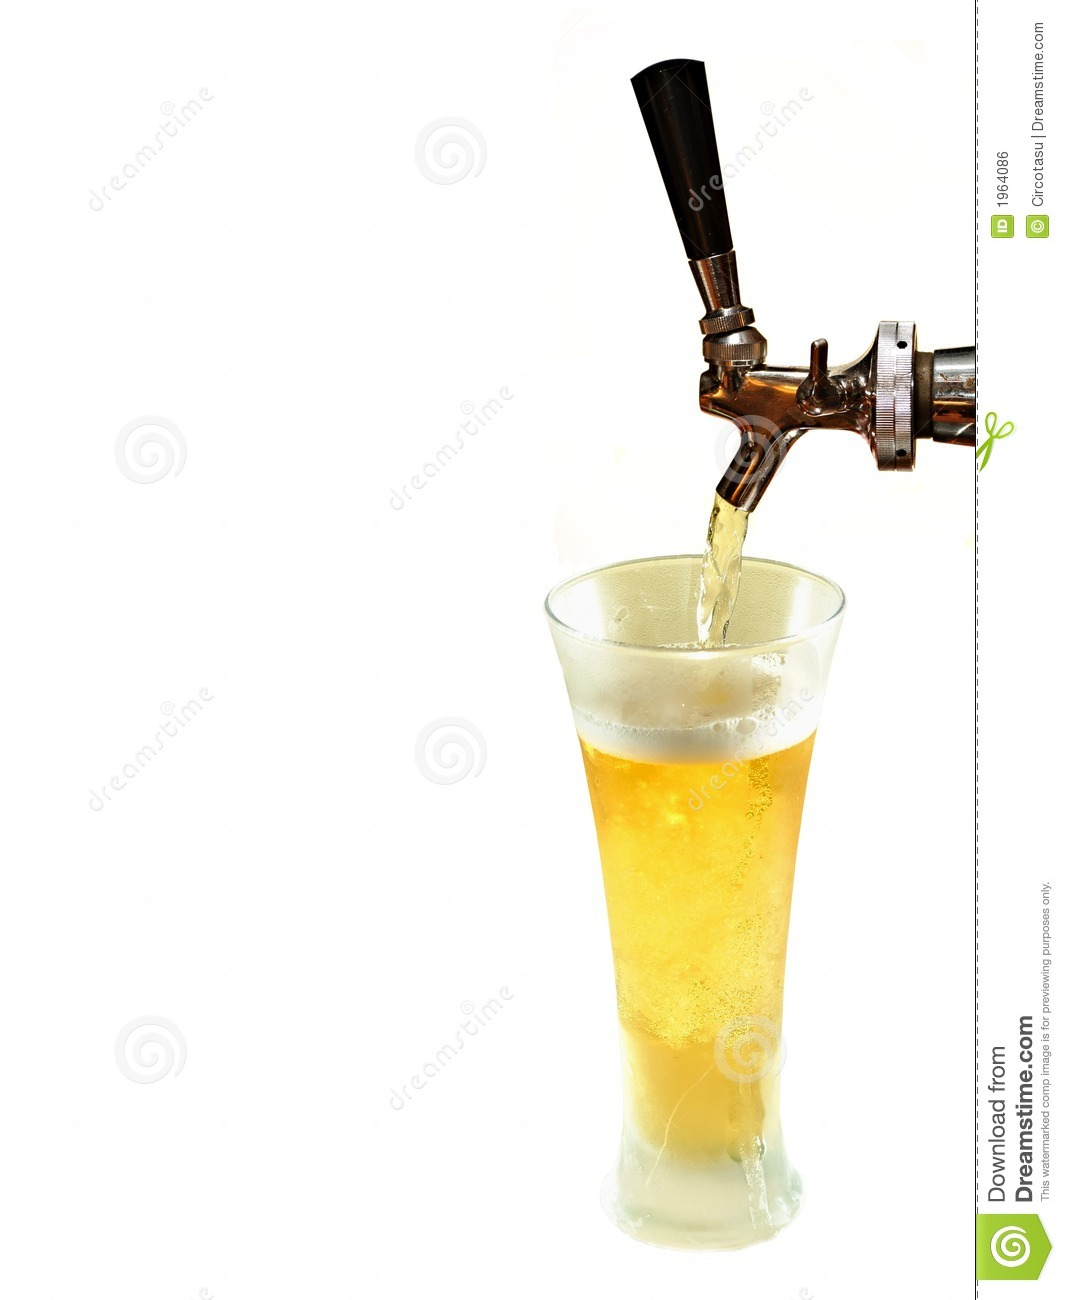 Beer Draft And Frozen Glass Royalty Free Stock Image   Image  1964086